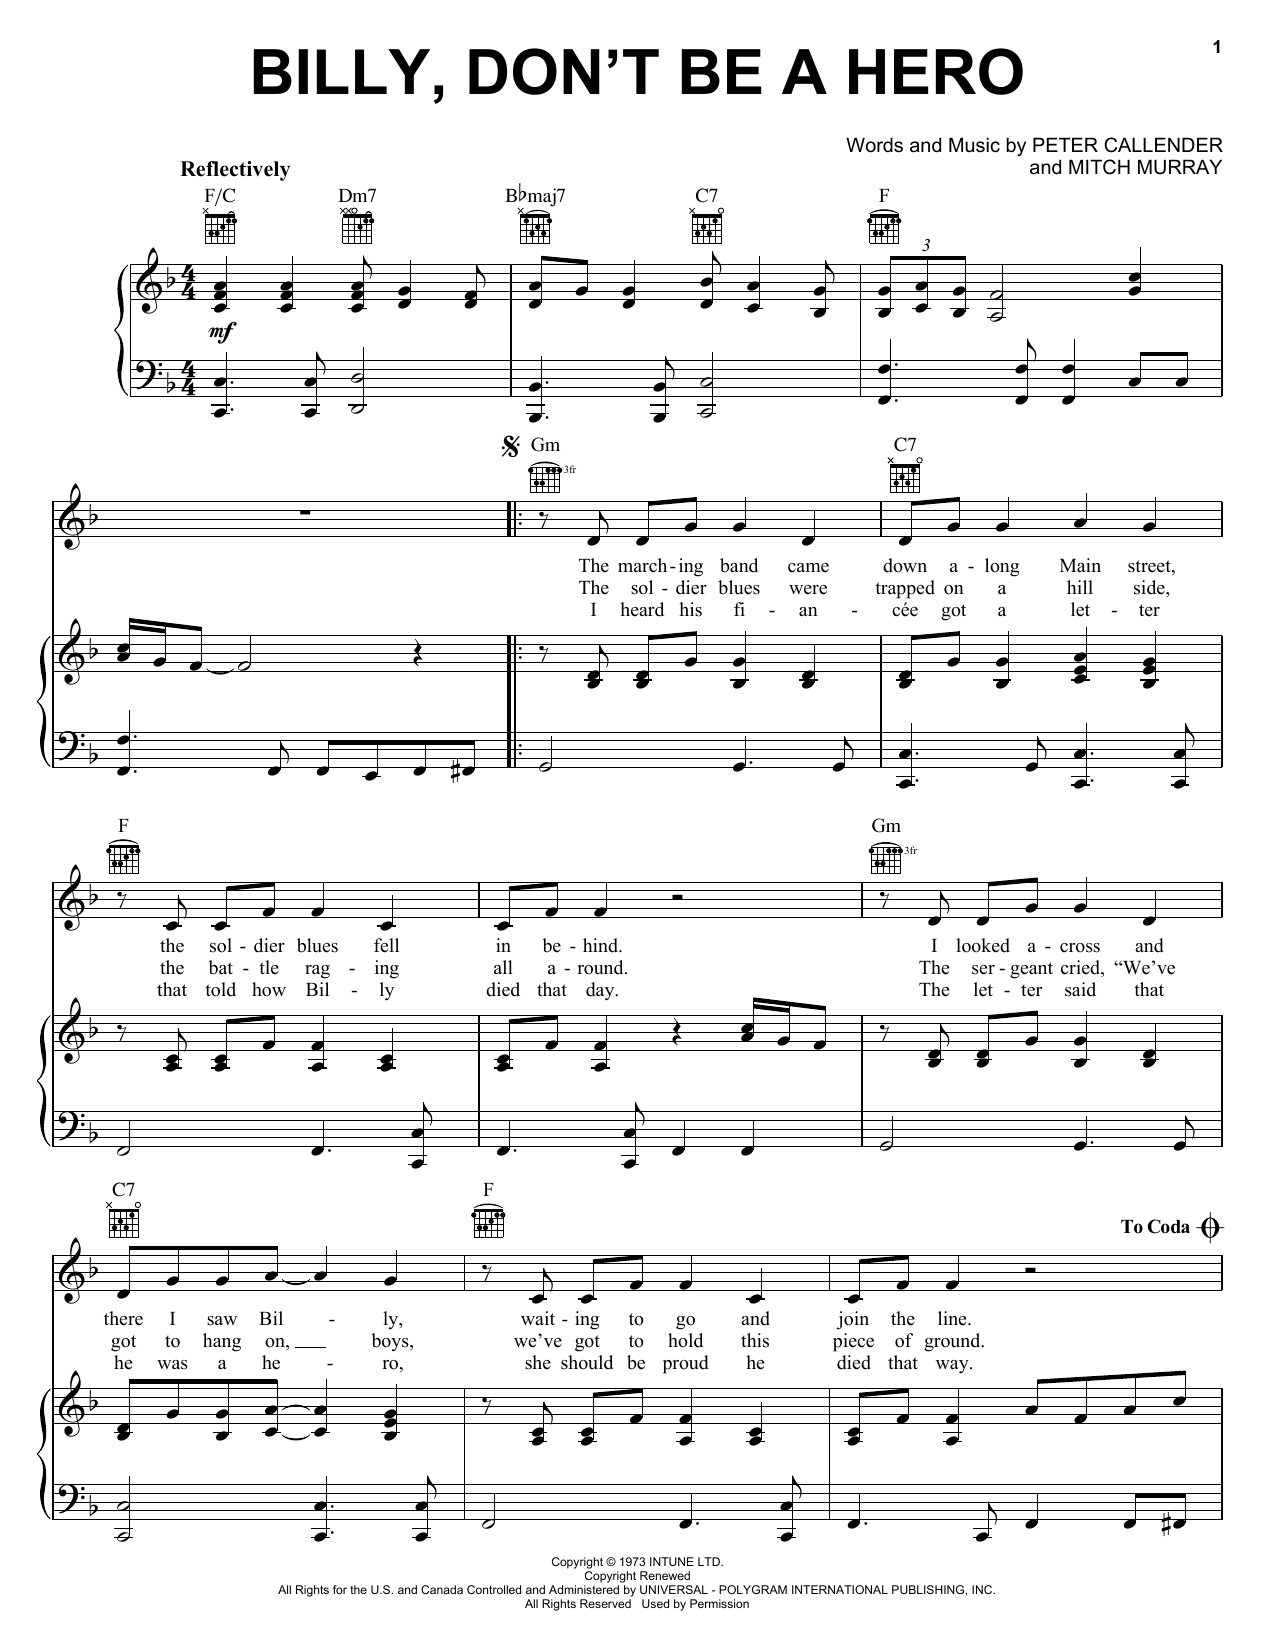 Bo Donaldson & The Heywoods Billy, Don't Be A Hero sheet music notes printable PDF score